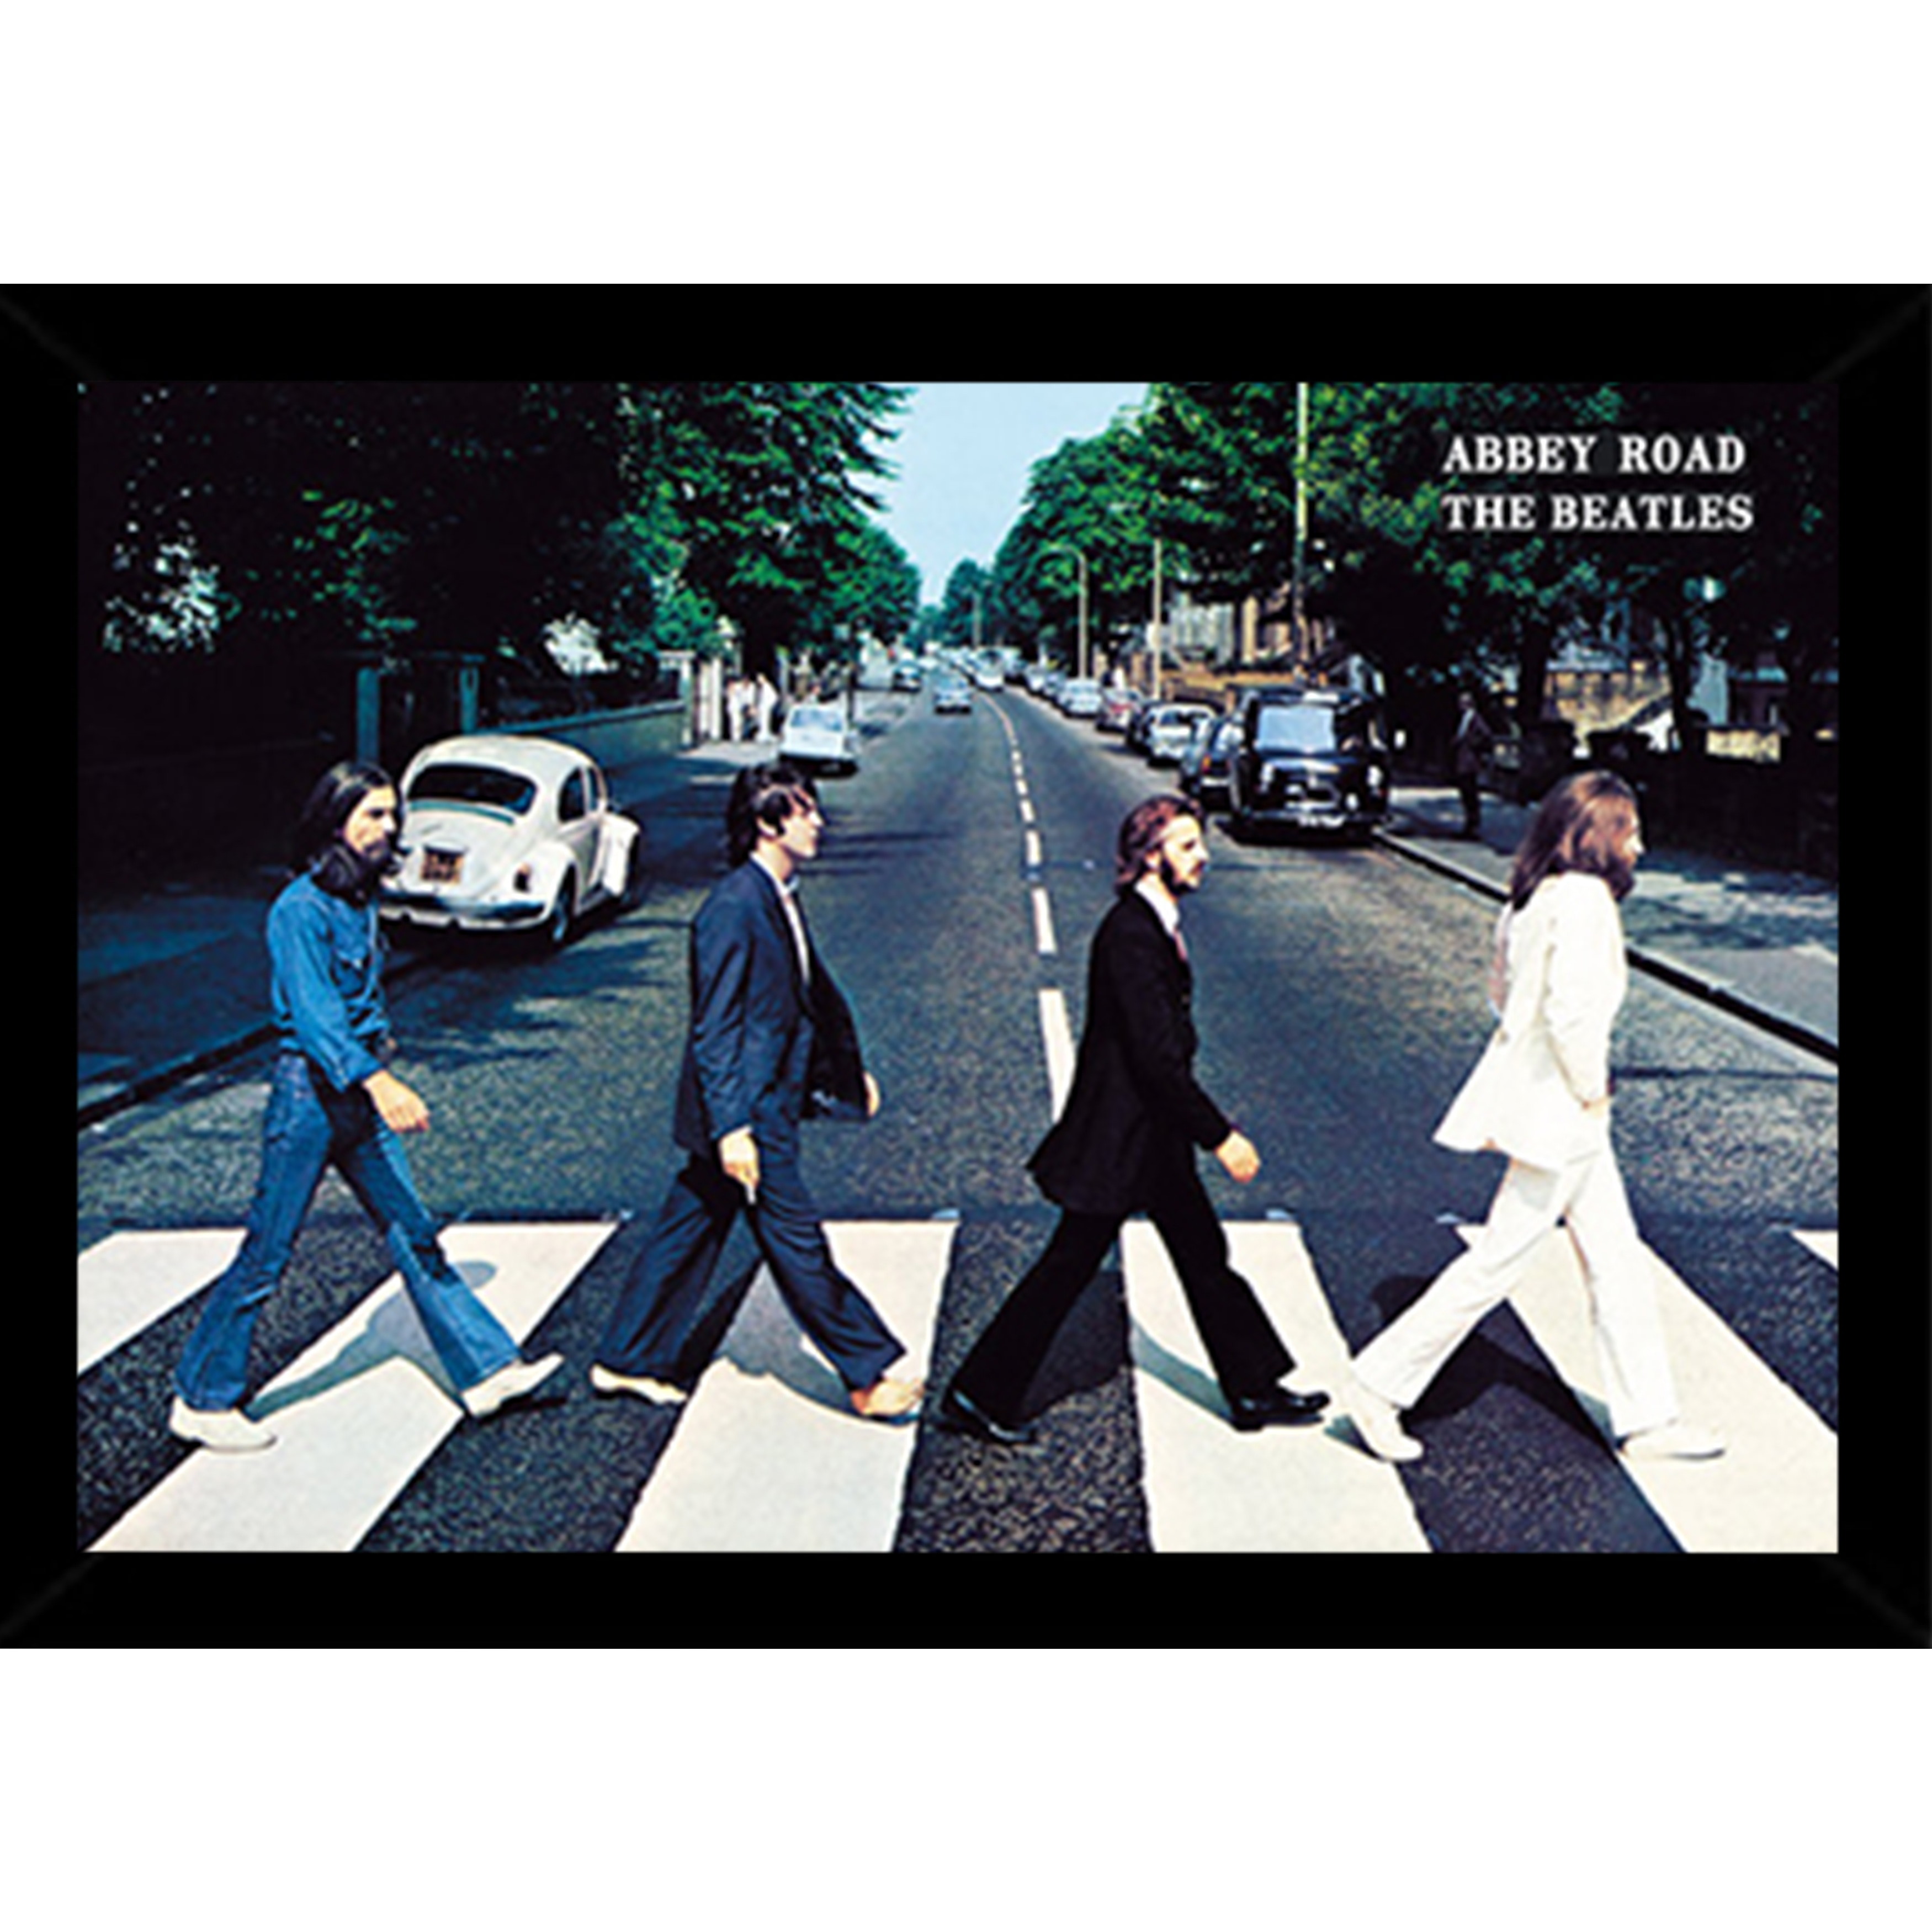 Shop The Beatles Abbey Road Poster In A Black Wood Frame 36x24